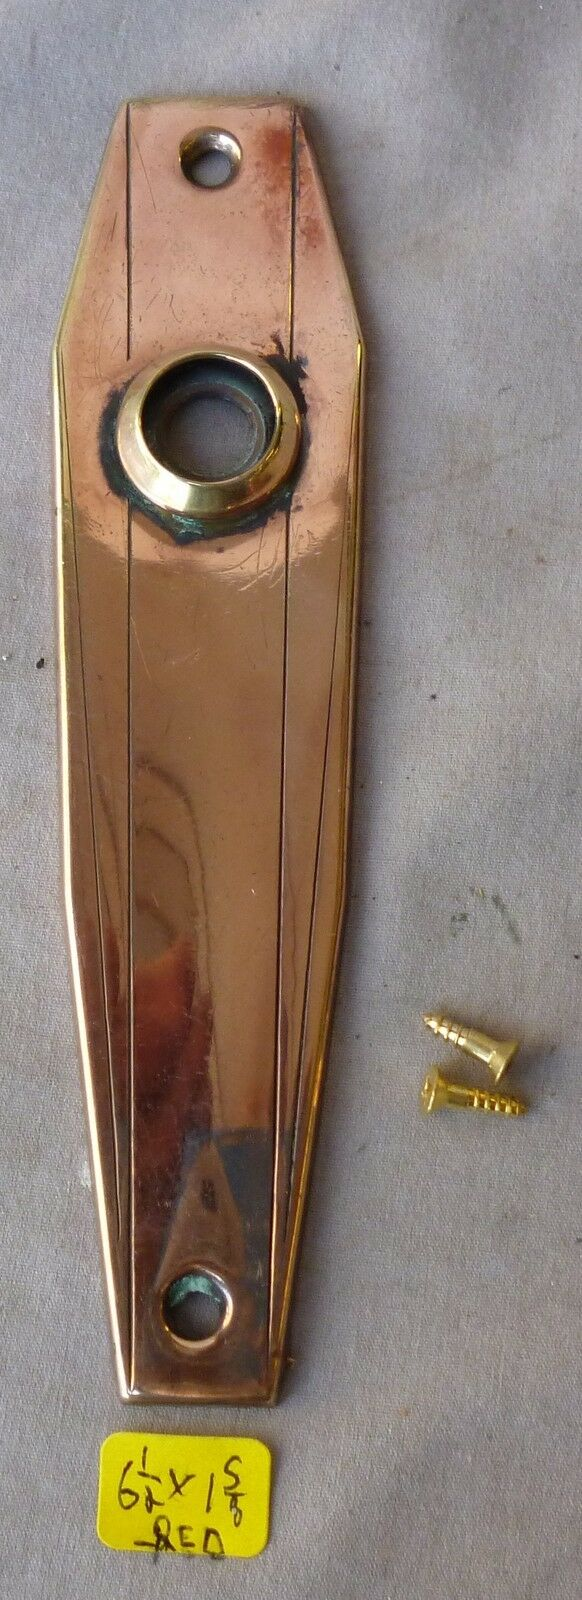 """Door Knob Back Plate (one) No keyhole Very Deco 6 1/2""""h  Polished RED Brass"""